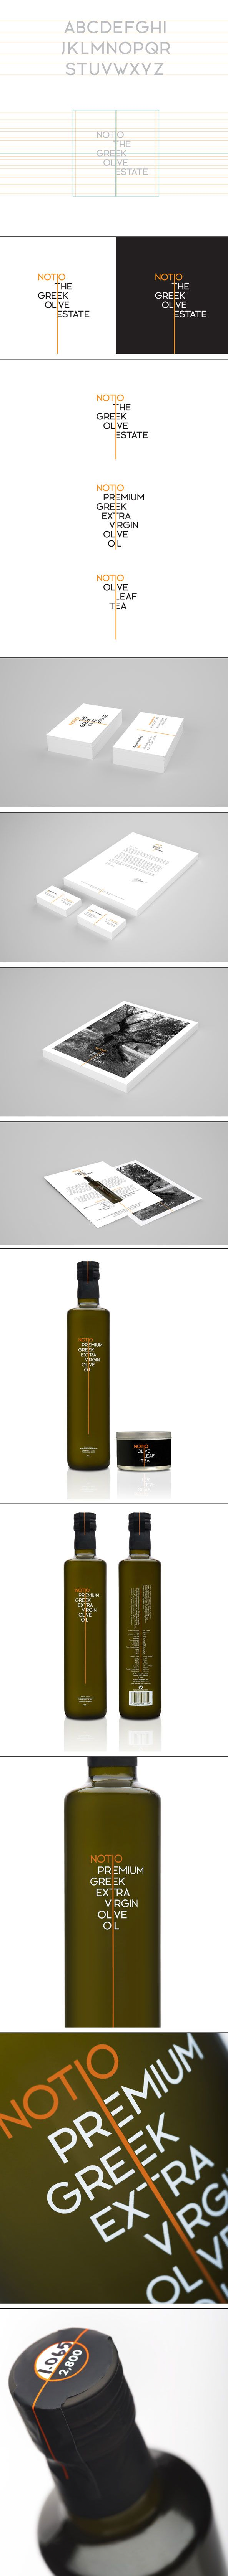 Branding, identity and packaging for Notio Goods, more here> http://www.comebackstudio.com/portfolio/notio-goods/  extra virgin olive oil, olive oil packaging